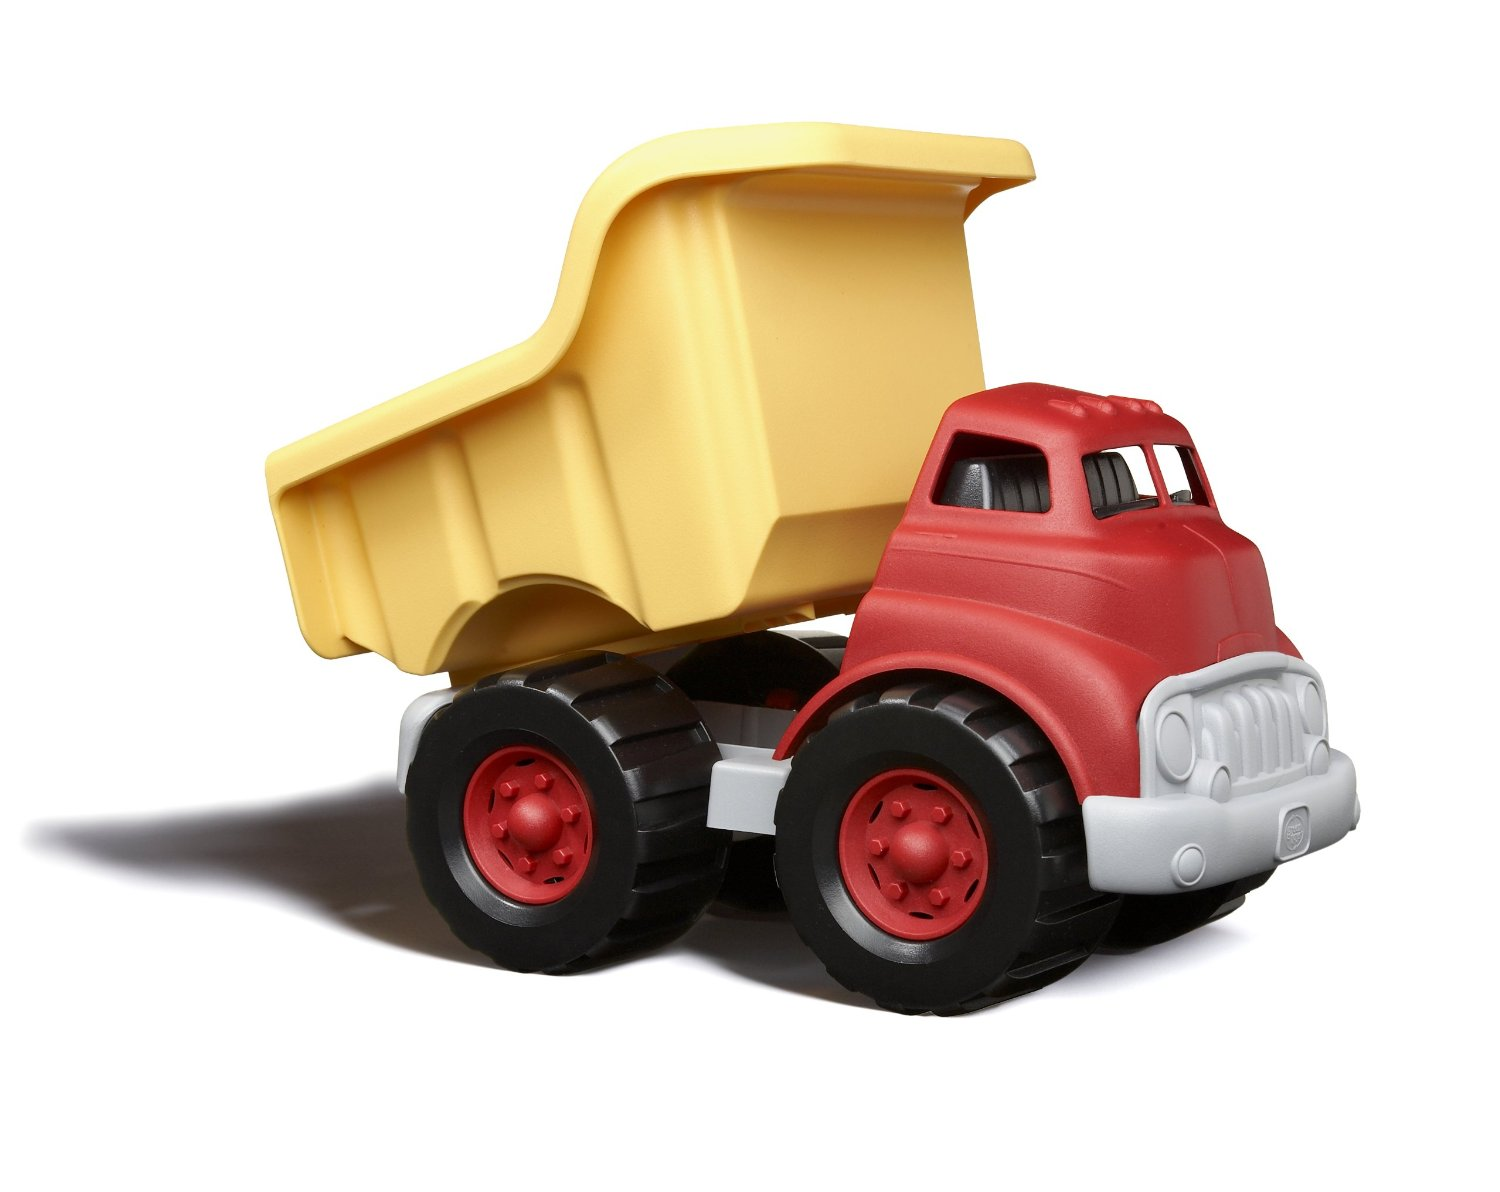 Toy Dump Trucks For Boys : Amazon deal of the day off select preschool toys